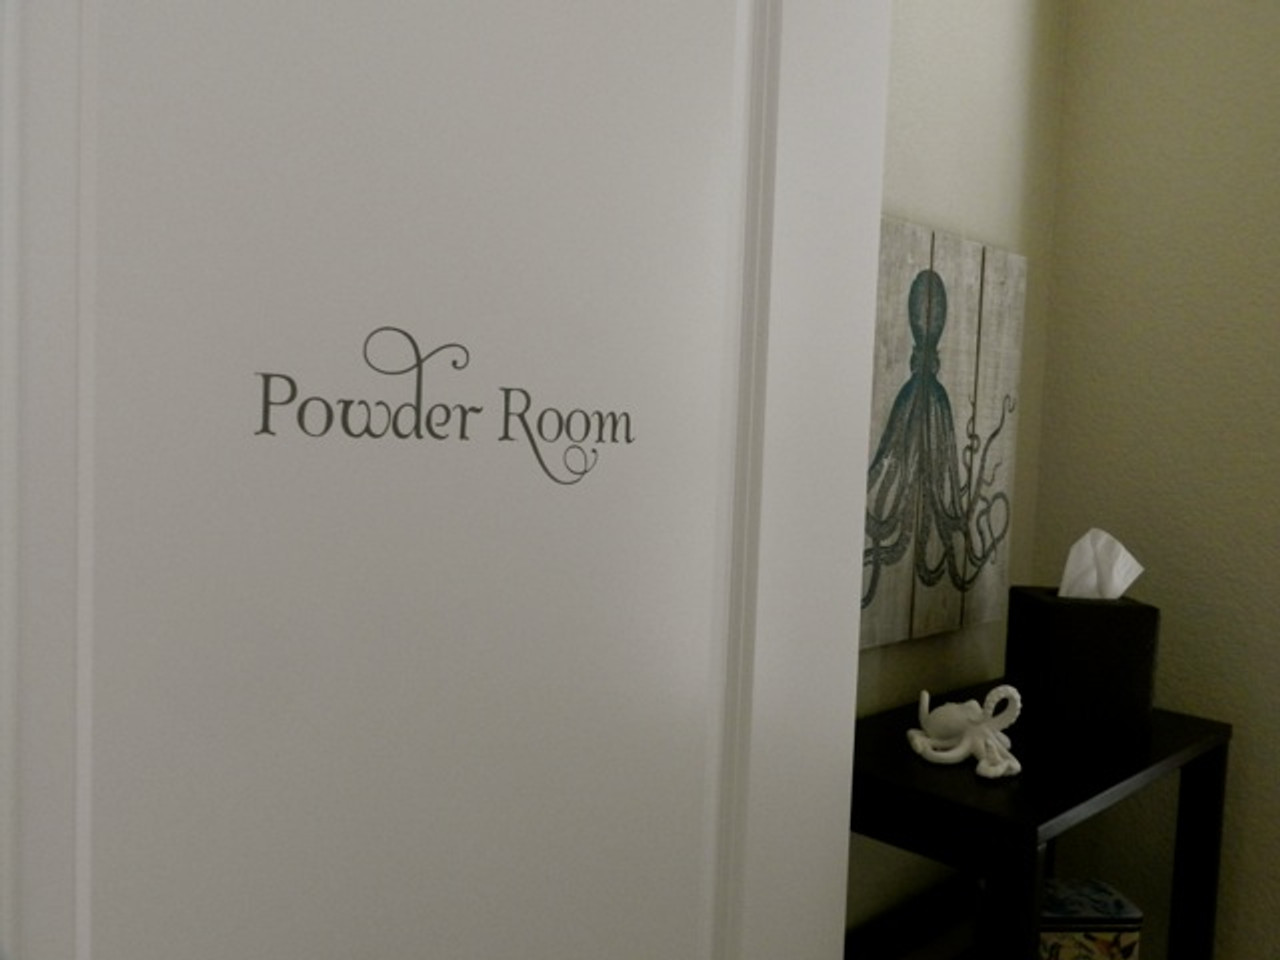 POWDER ROOM Vinyl Sticker - Bathroom Restroom Toilet Door - Home Decor - Die Cut Decal - Swash